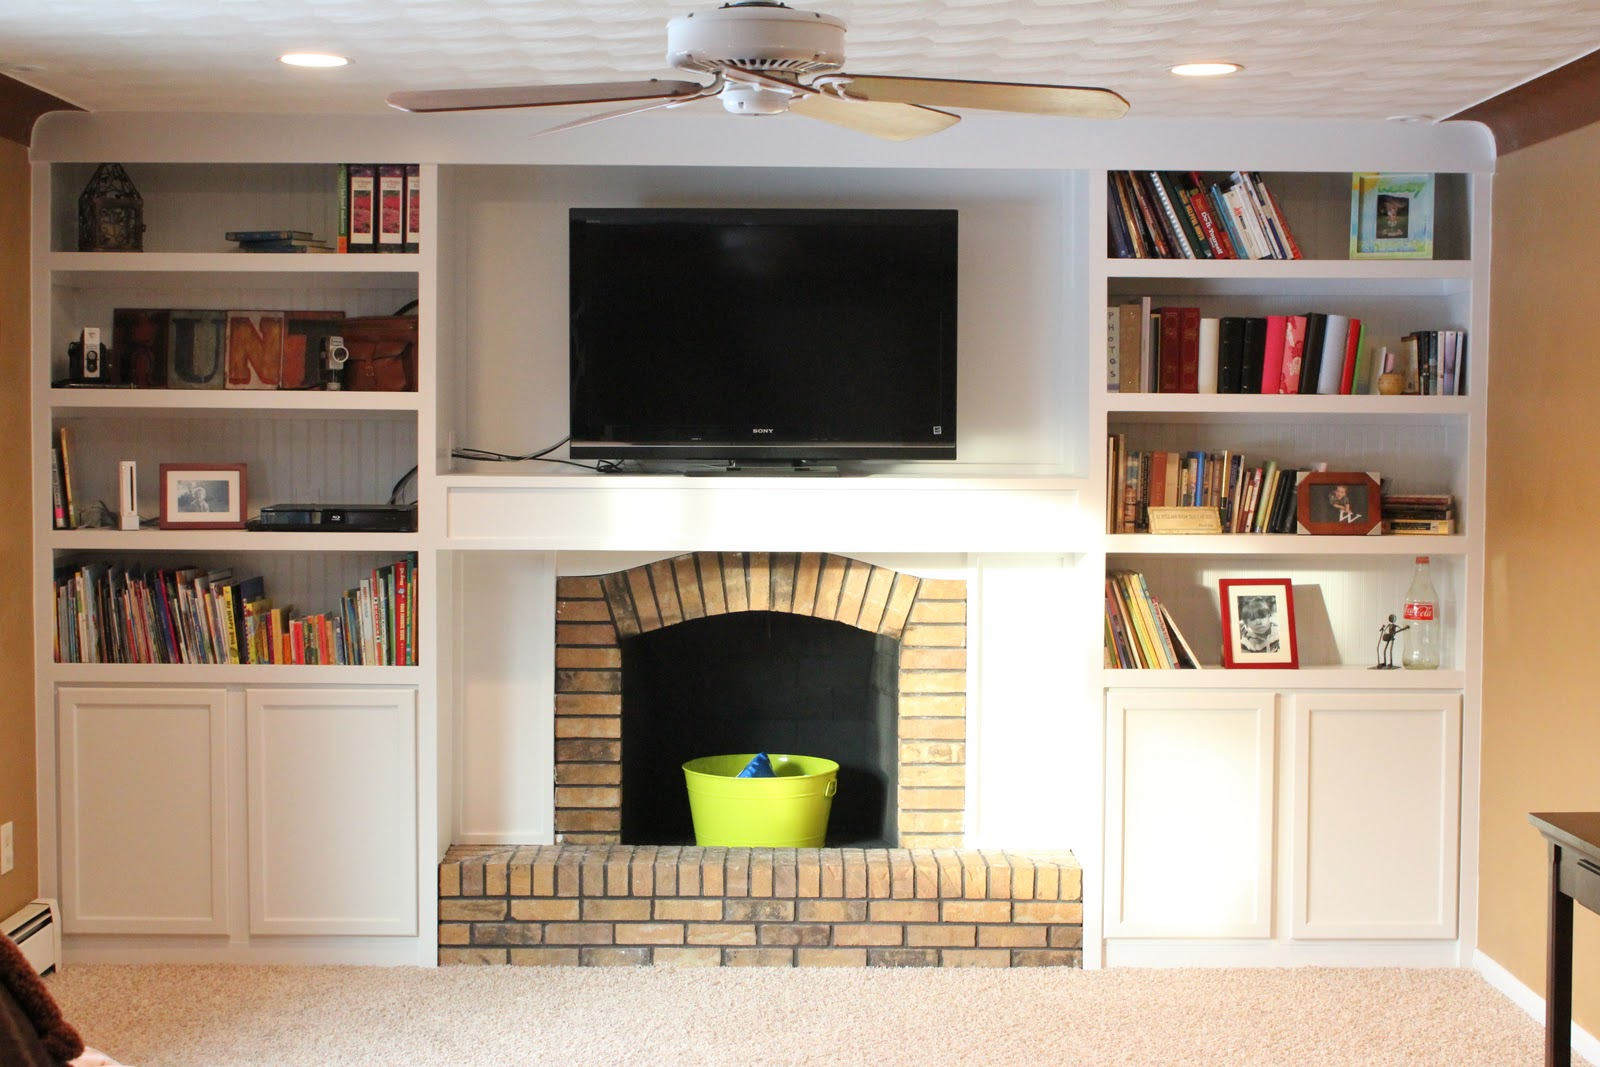 with shelves design ideas cool on fireplaces bookshelves side astonishing each unique fireplace page nice idea collections bold